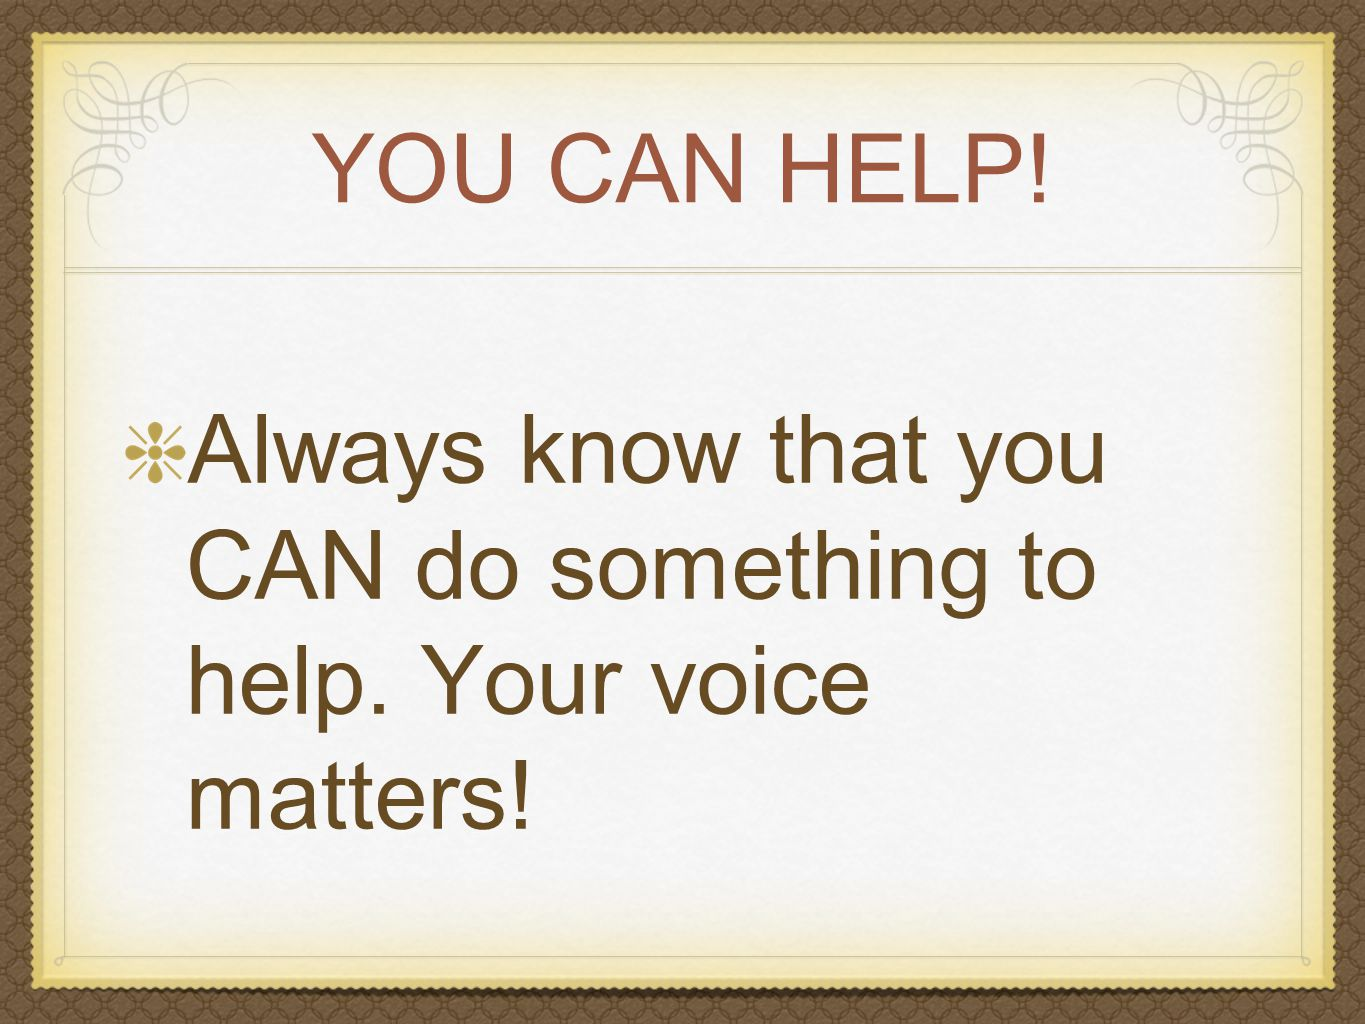 YOU CAN HELP! Always know that you CAN do something to help. Your voice matters!